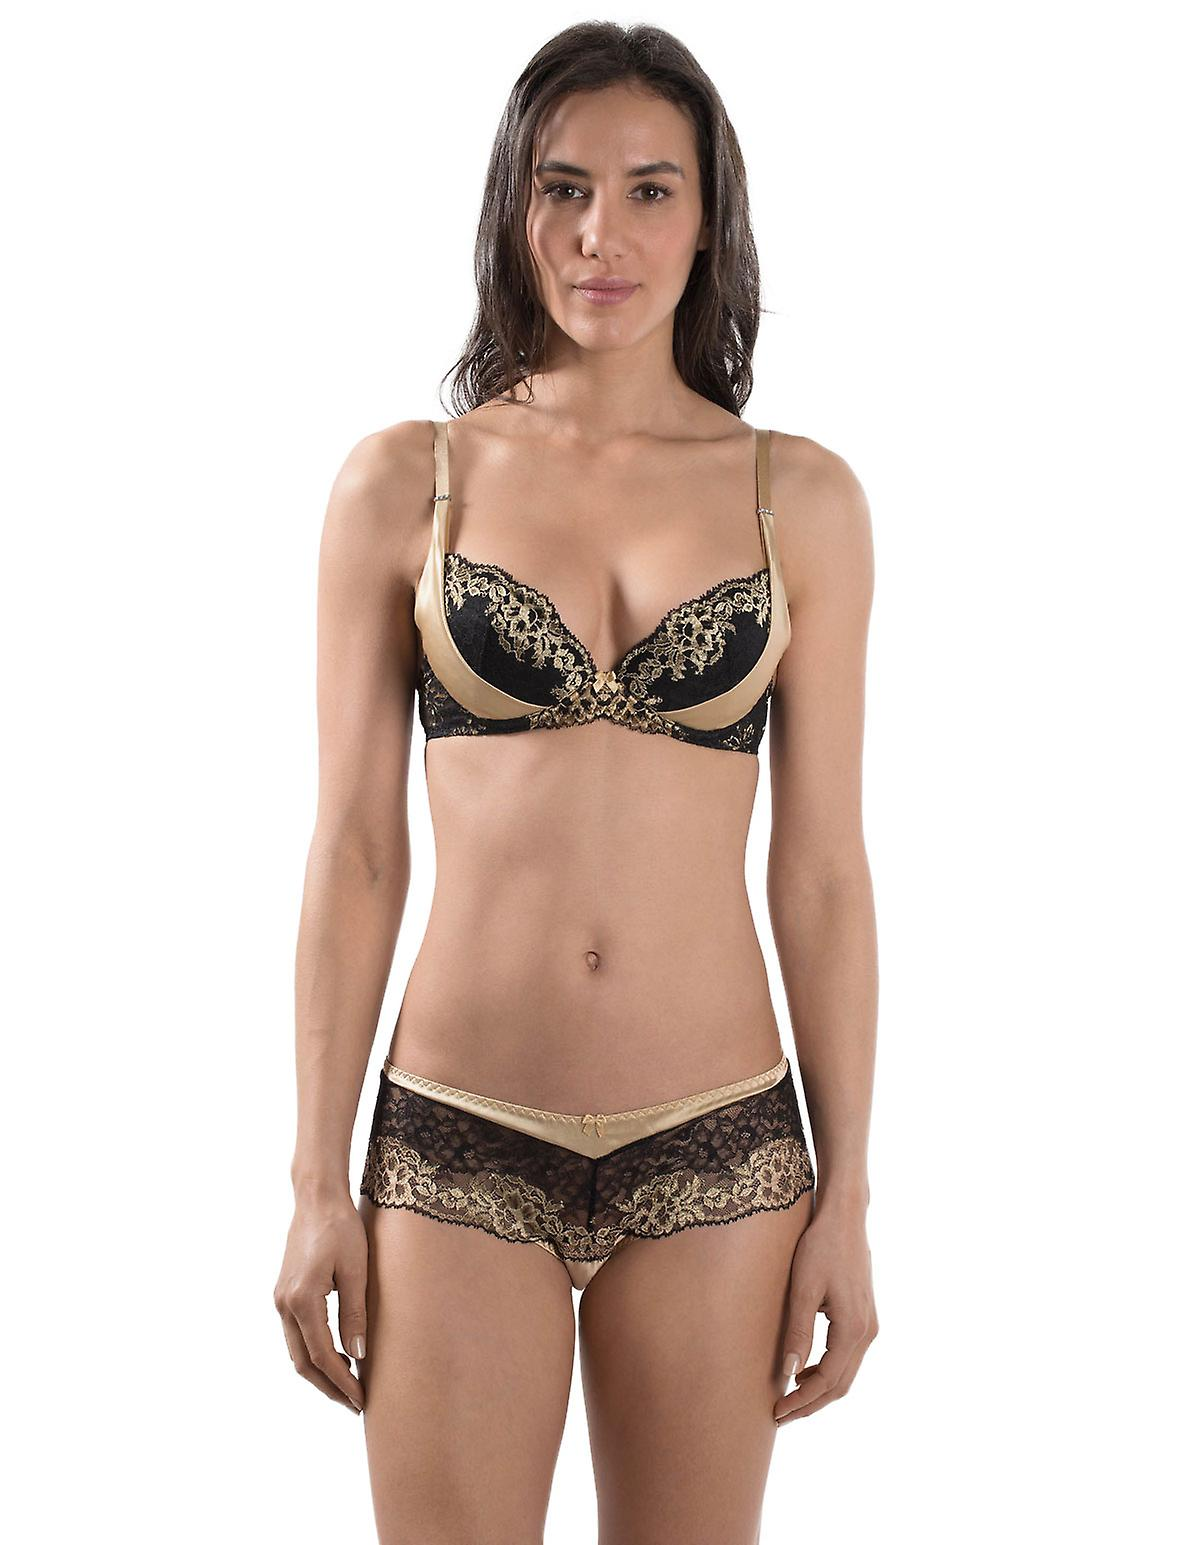 Aubade MD18 Women's Femme Glamour Black and Gold Lace Underwired Plunge Bra